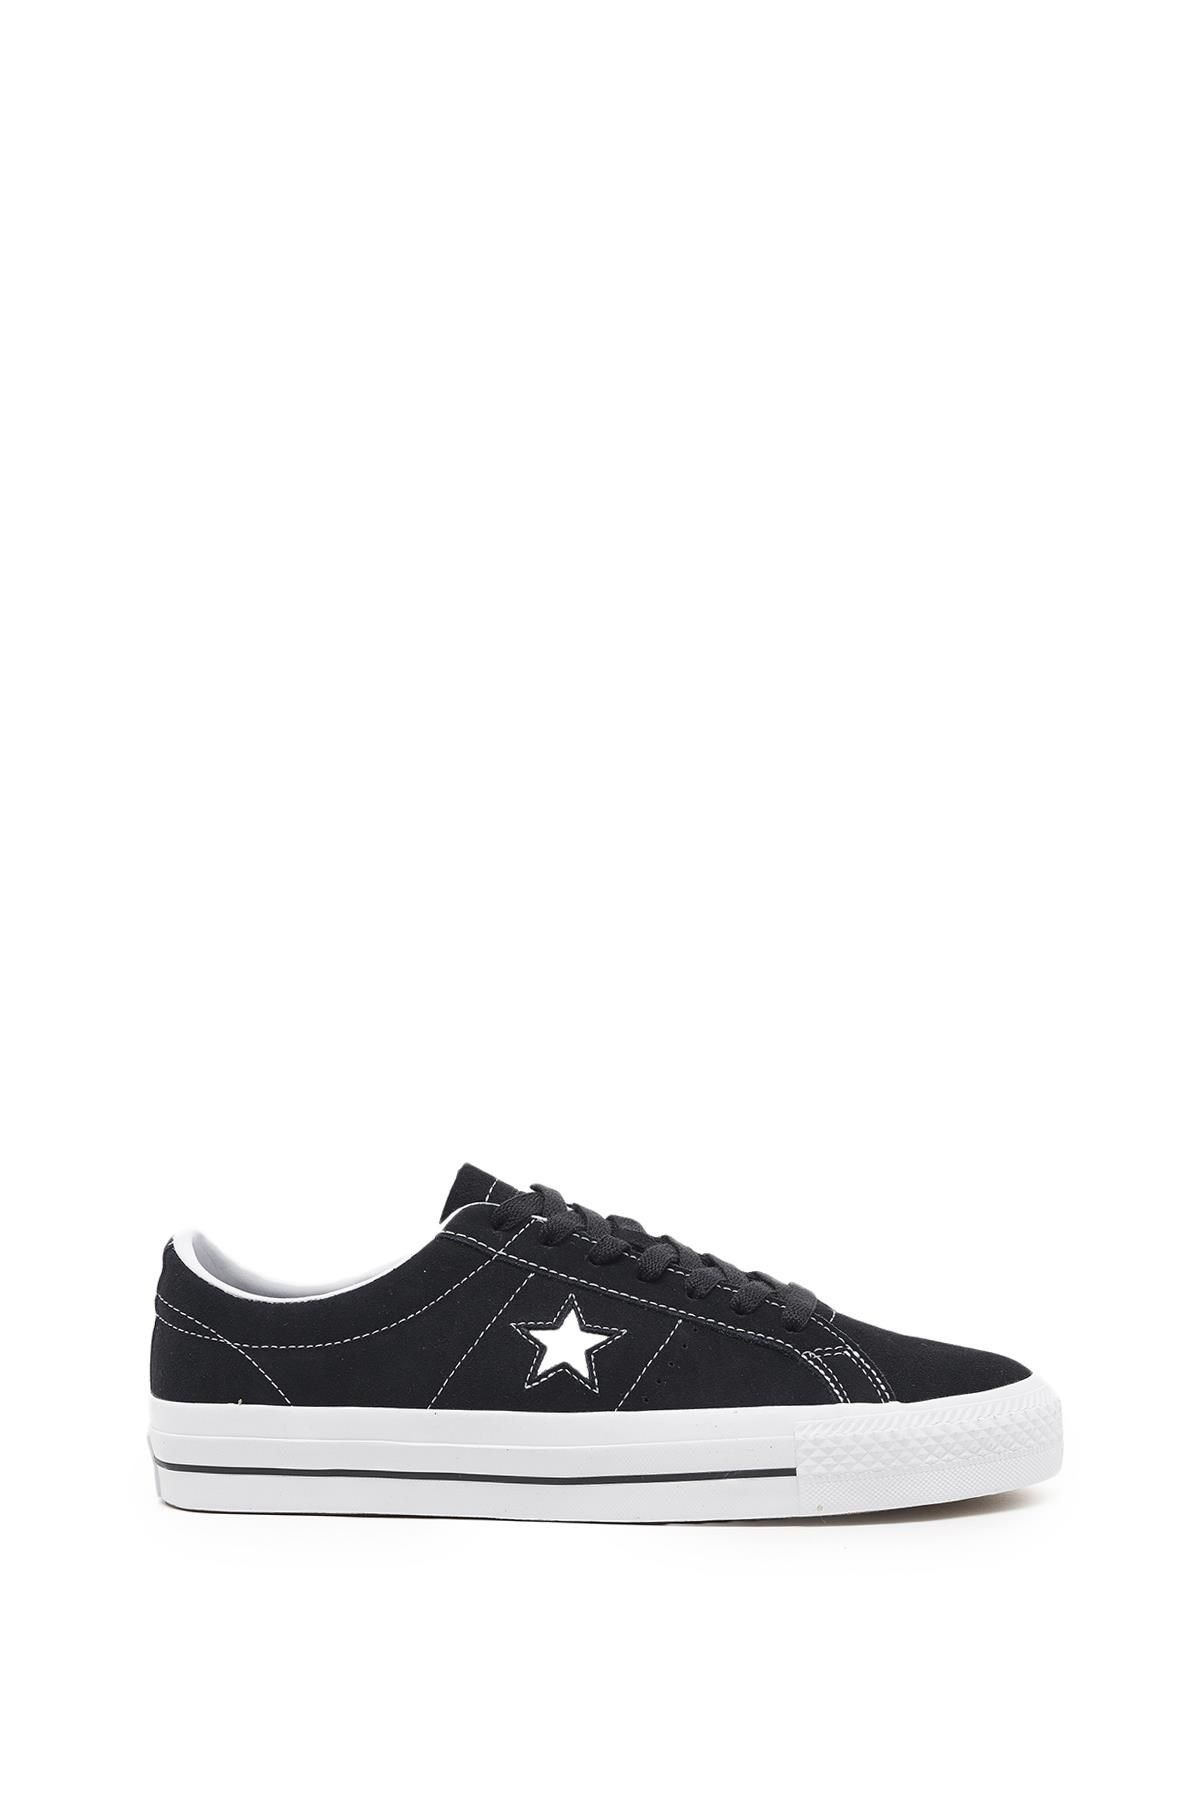 95d9be4941ee CONVERSE one star pro sneakers.  converse  shoes